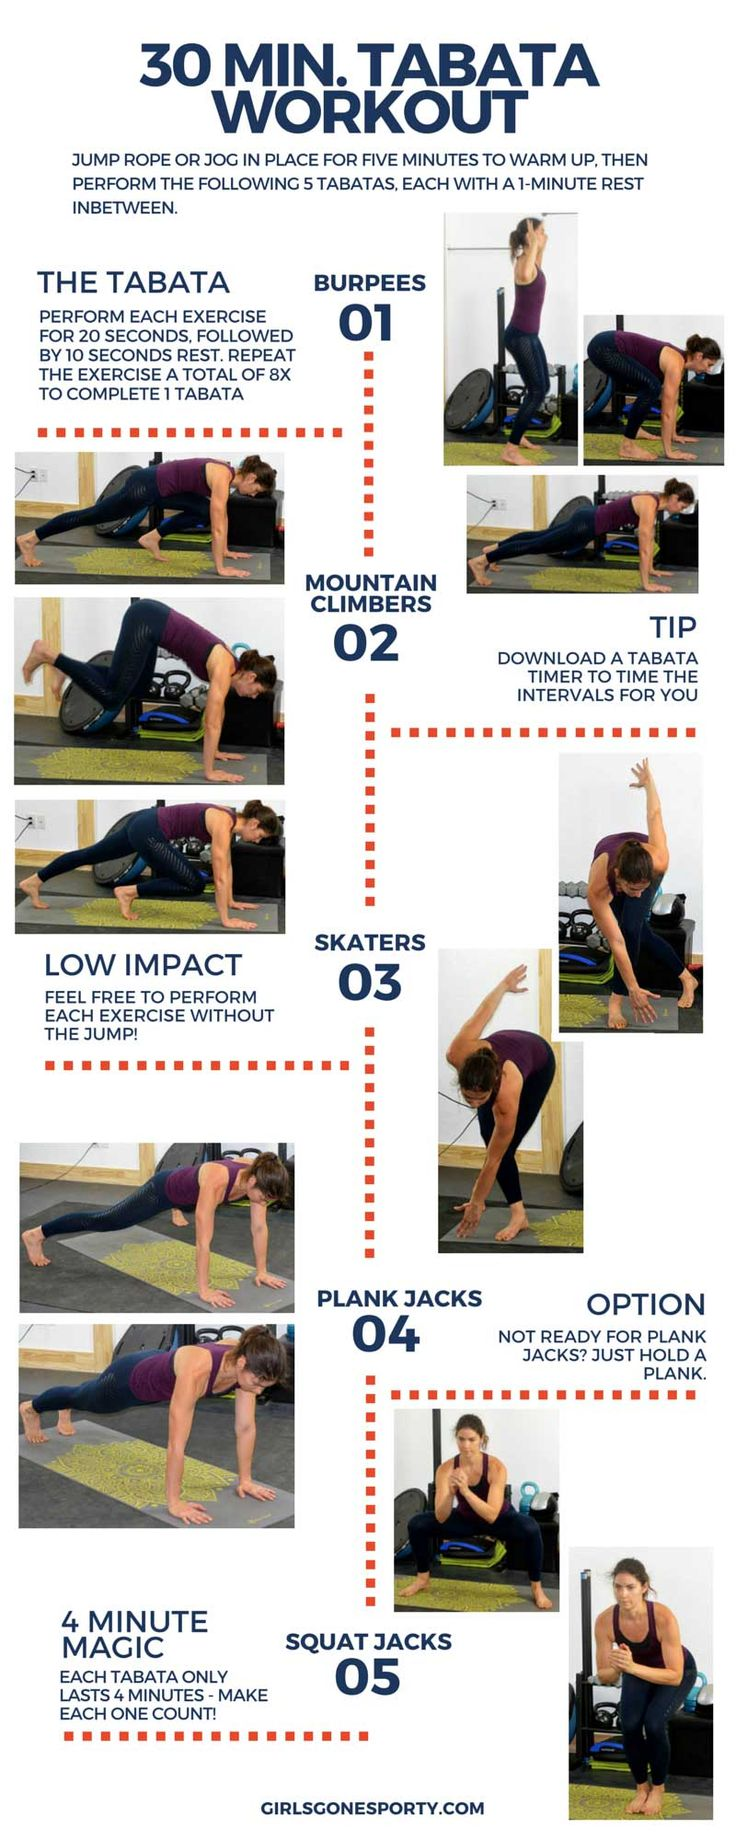 best cardio images on Pinterest  Workouts Exercise workouts and